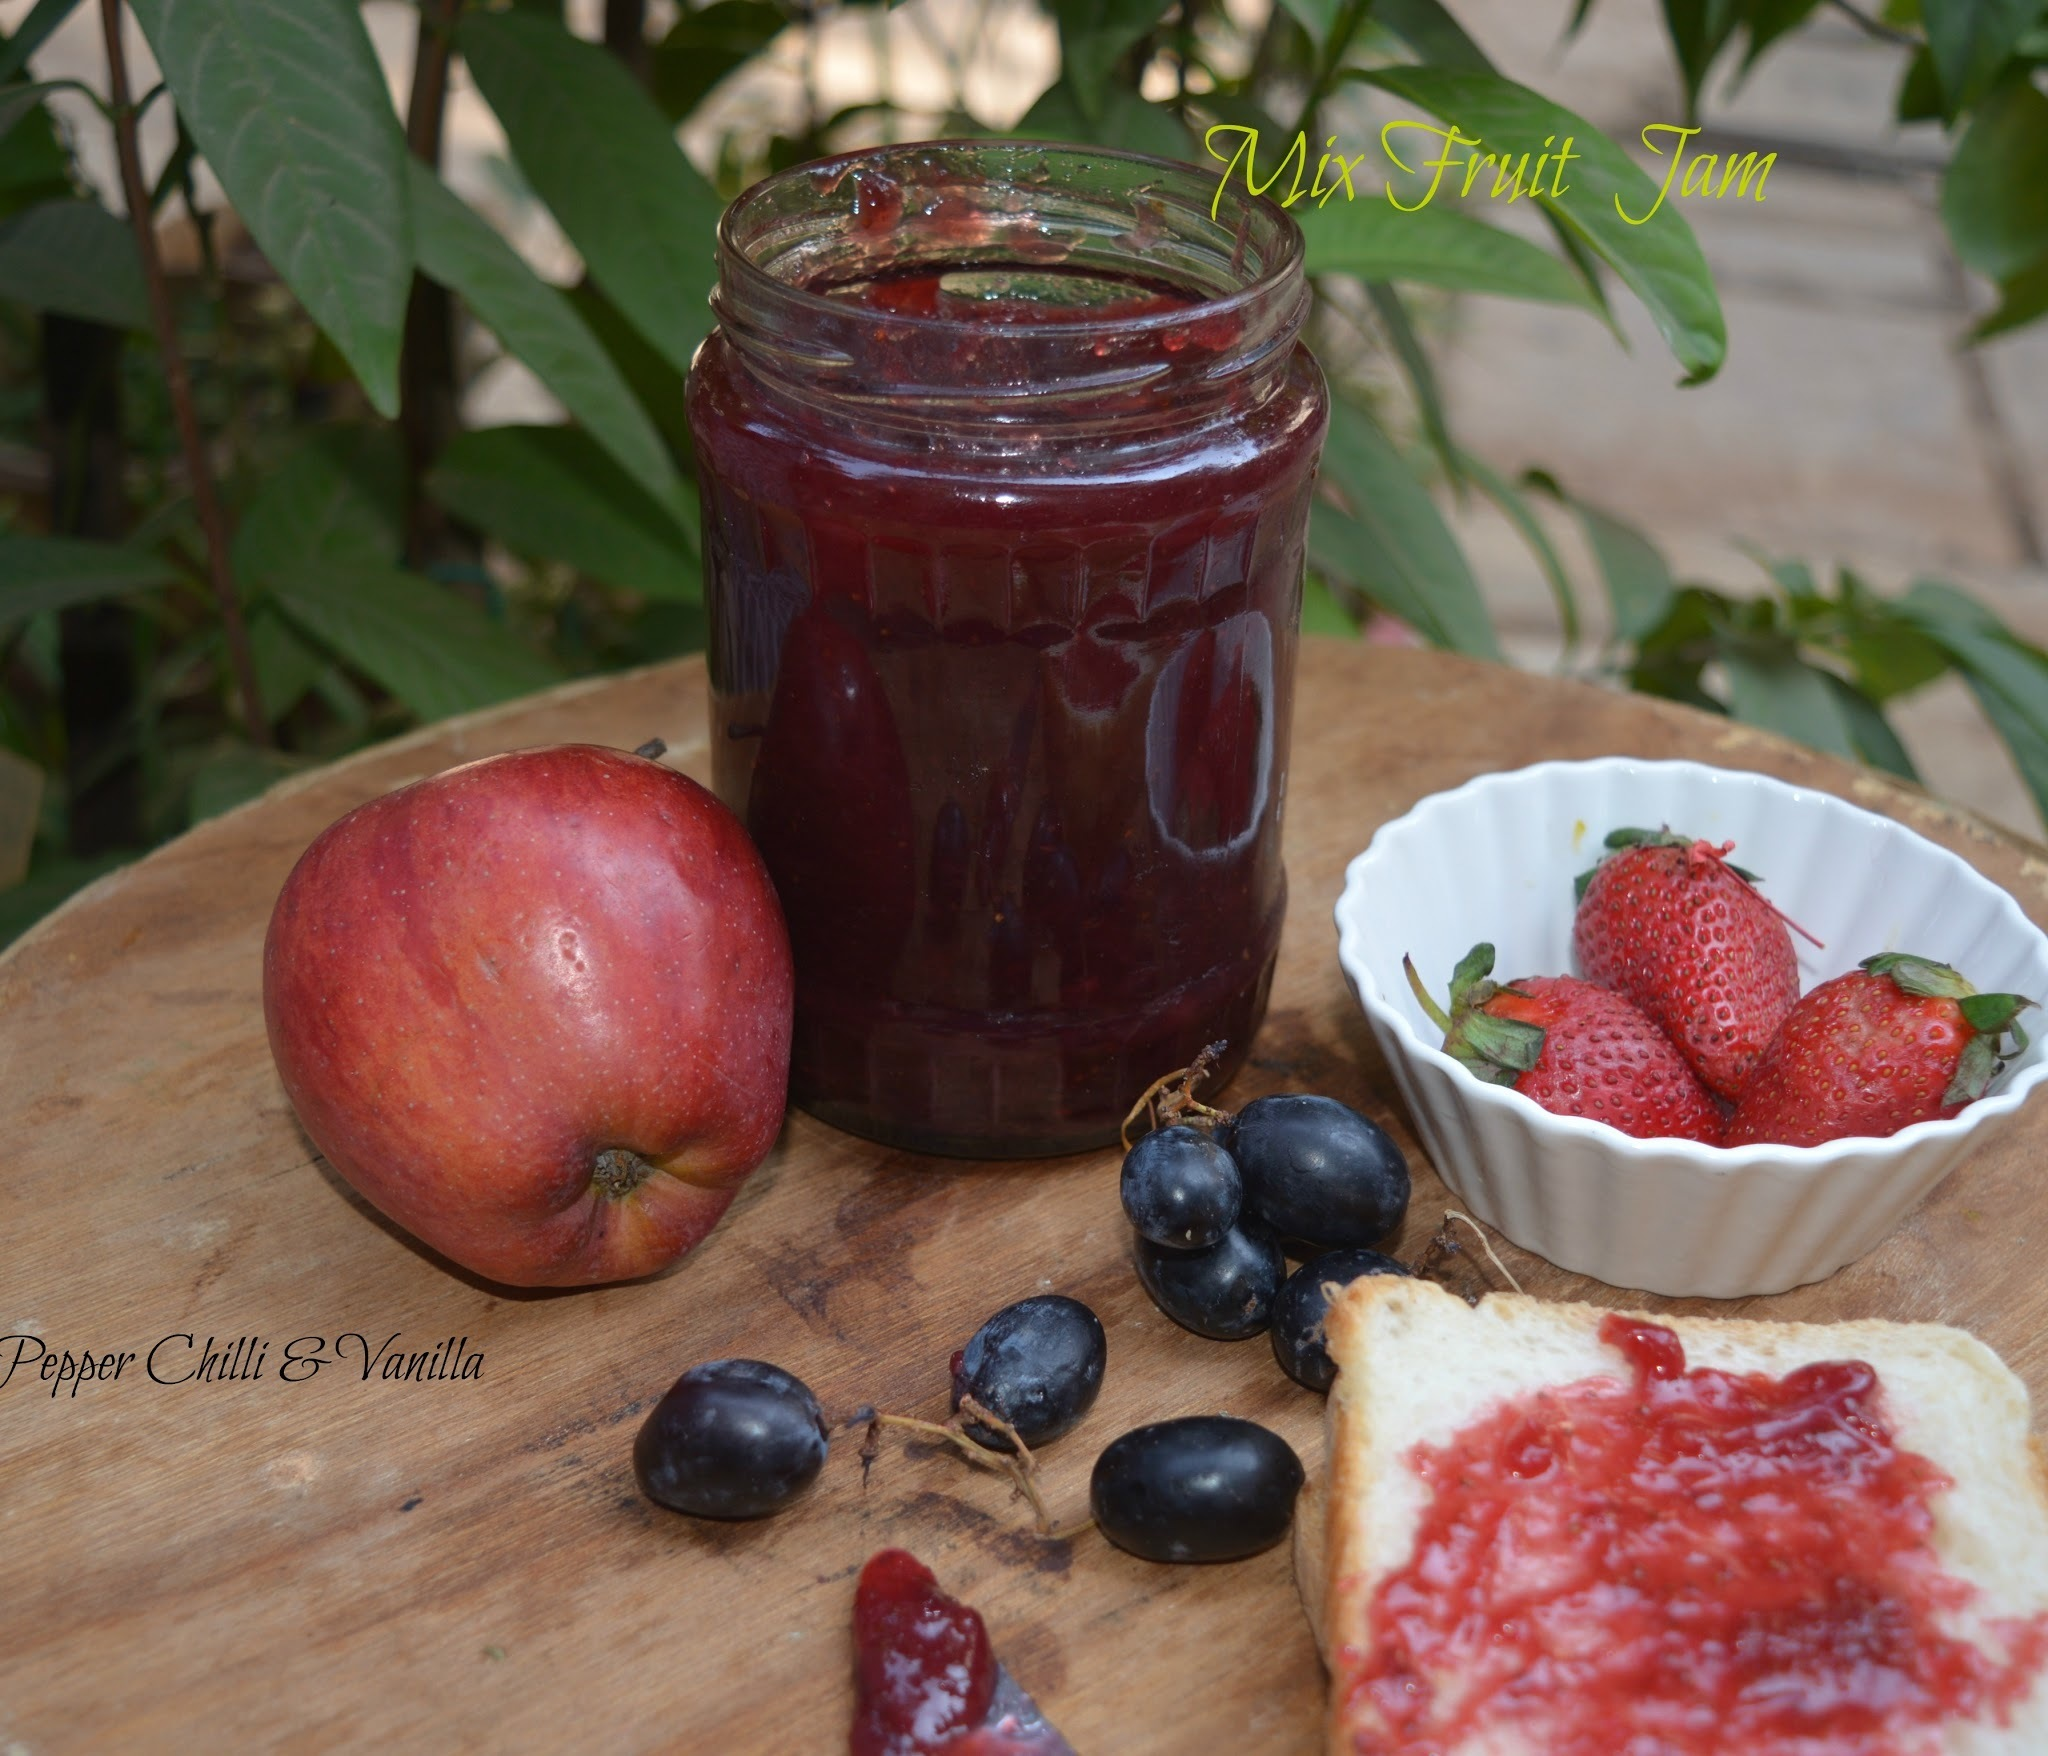 Mixed Fruit Jam/Easy Homemade Mixed Fruit Jam